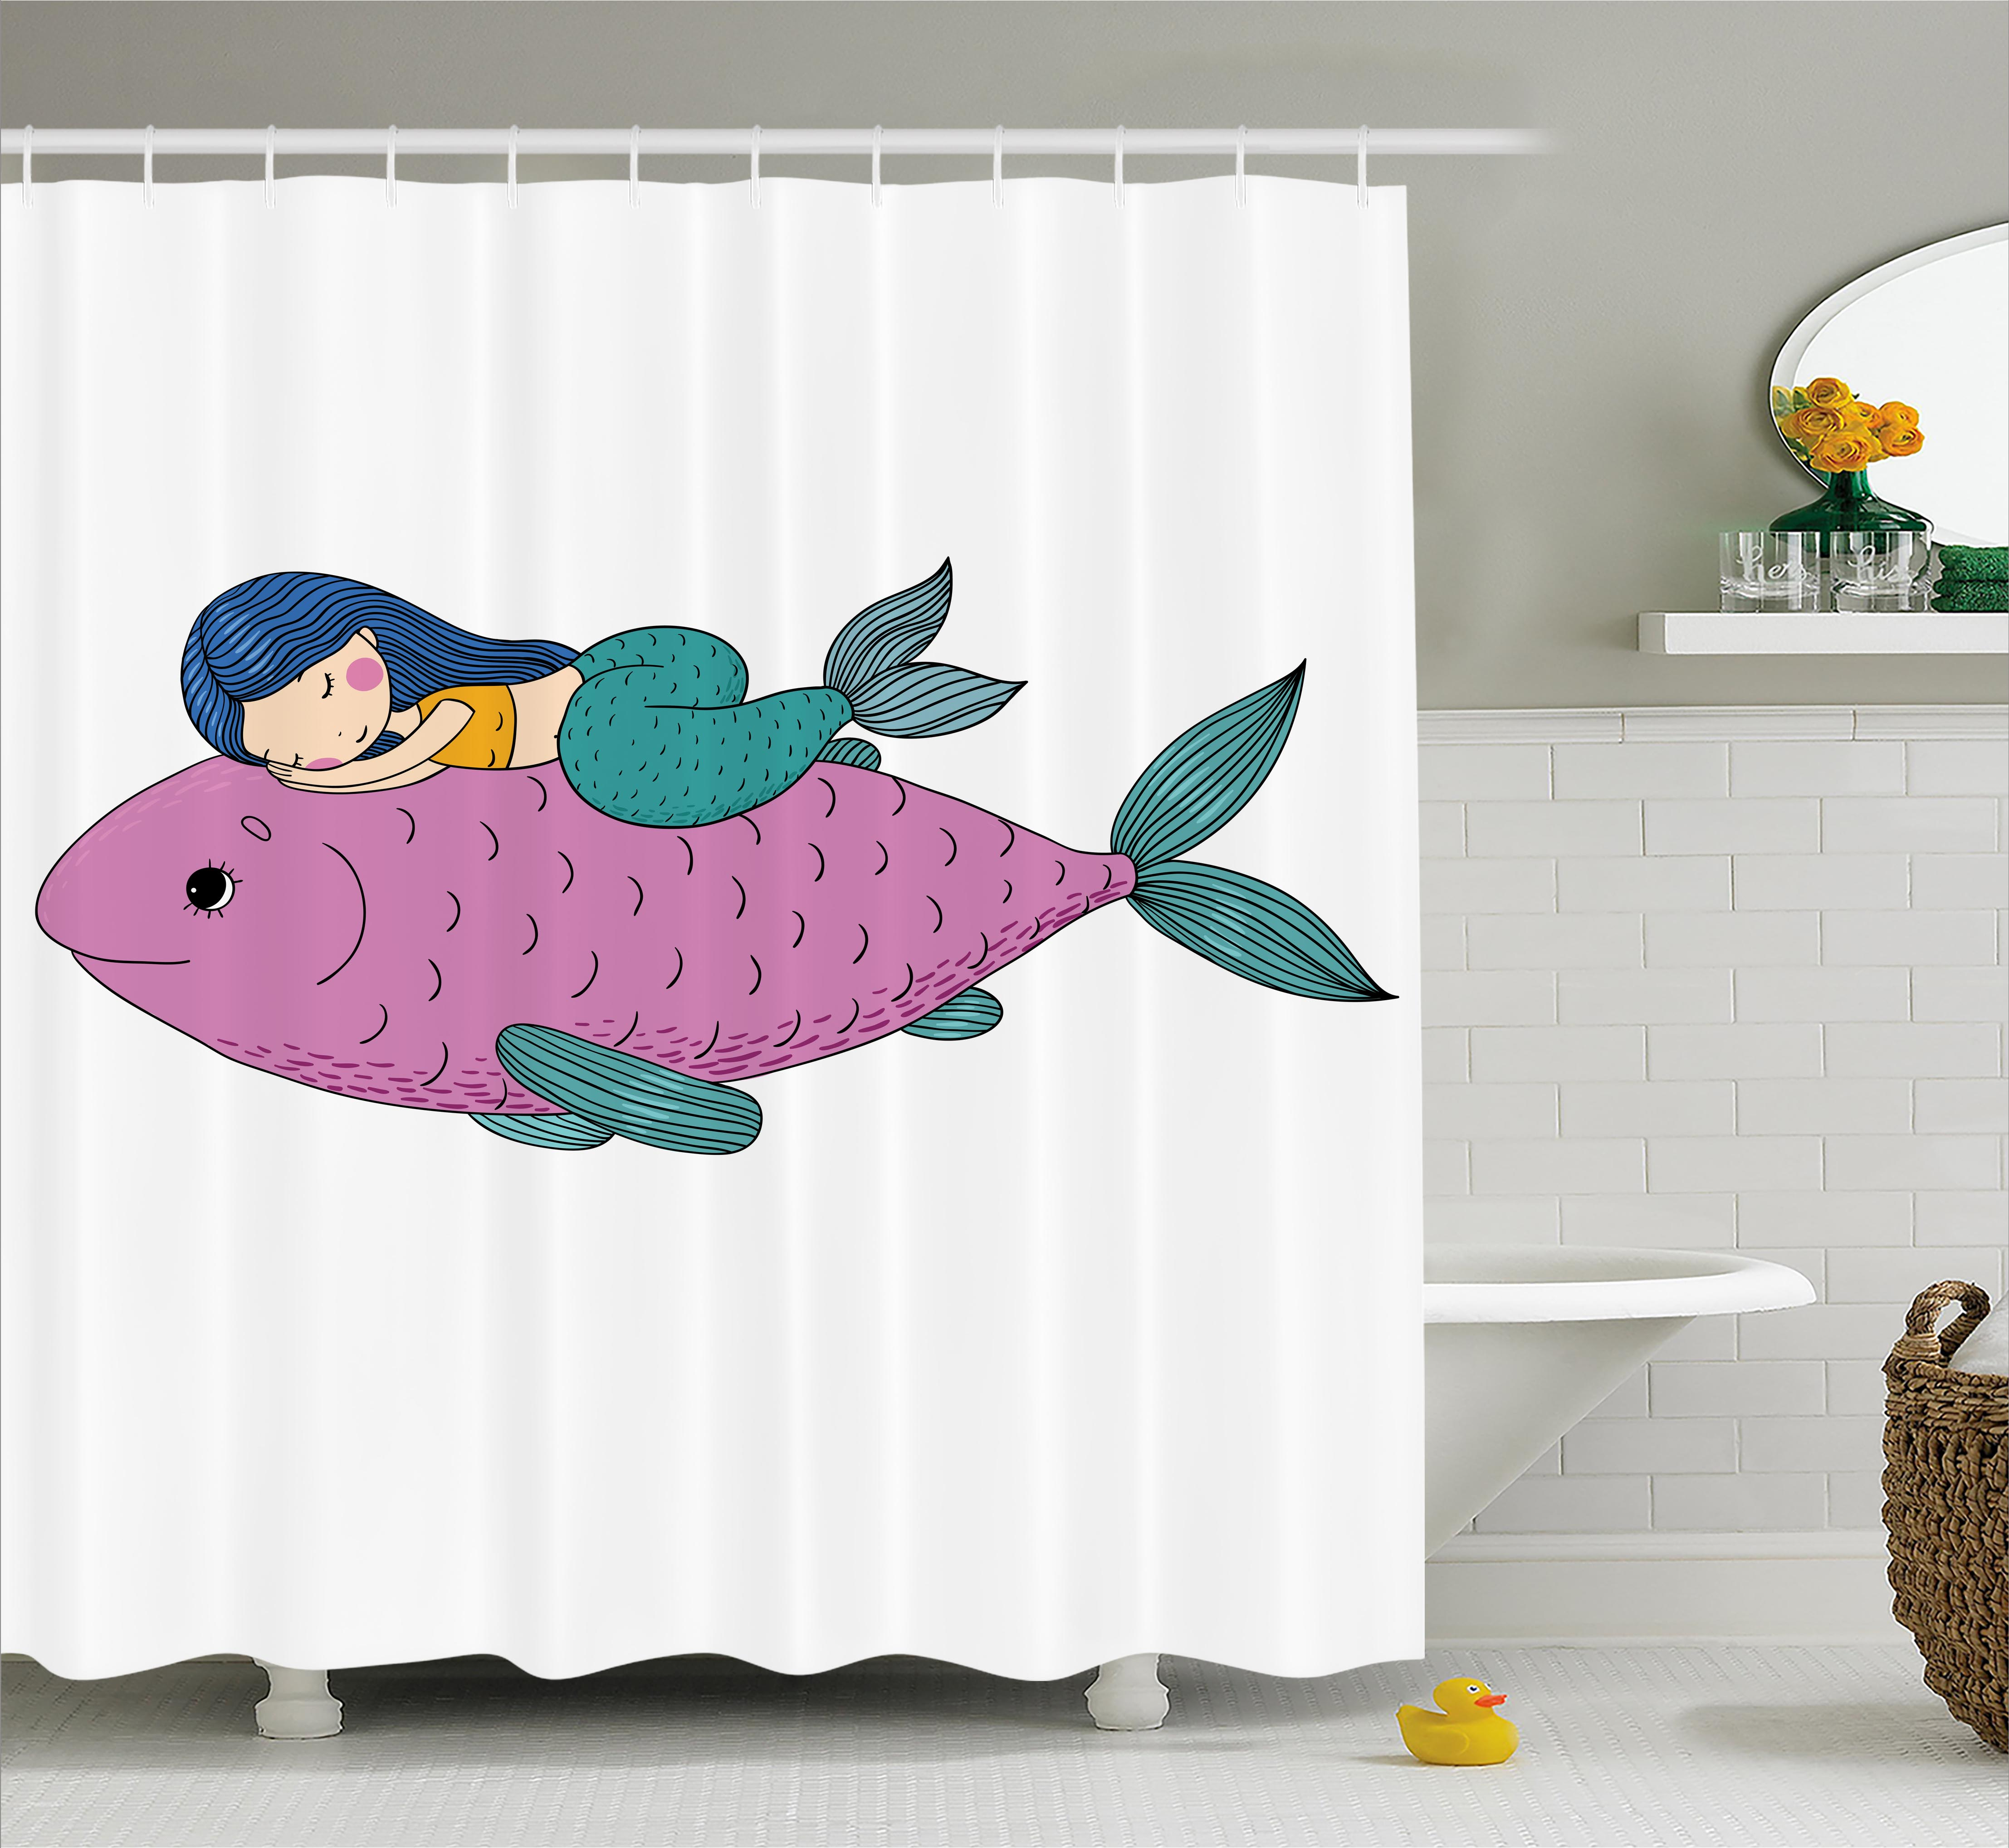 Mermaid Shower Curtain, Baby Mermaid Sleeping on Top Giant Fish Happy Best Friends Kids Nursery Theme, Fabric Bathroom Set with Hooks, 69W X 70L Inches, Purple Teal, by Ambesonne